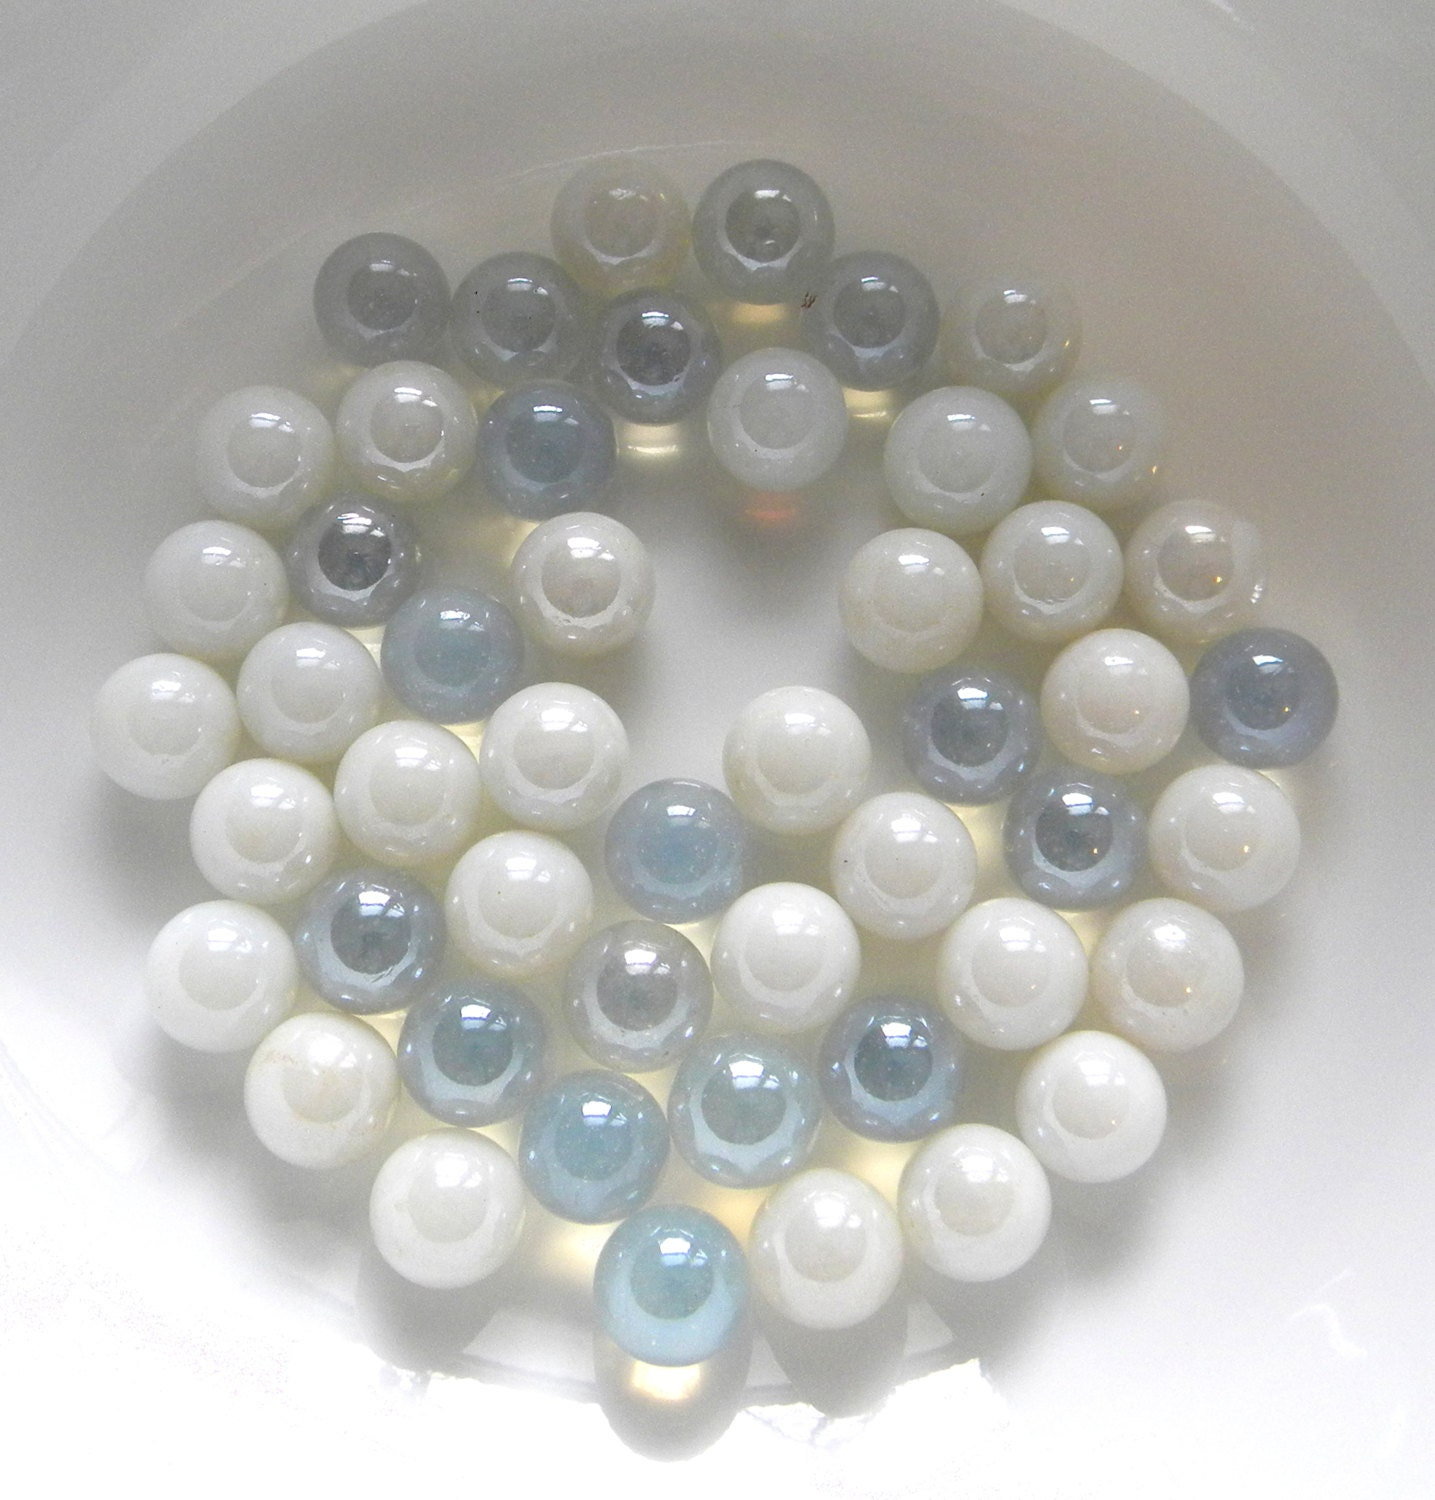 50 round glass gems white for crafts mosaic wedding floral for Glass jewels for crafts